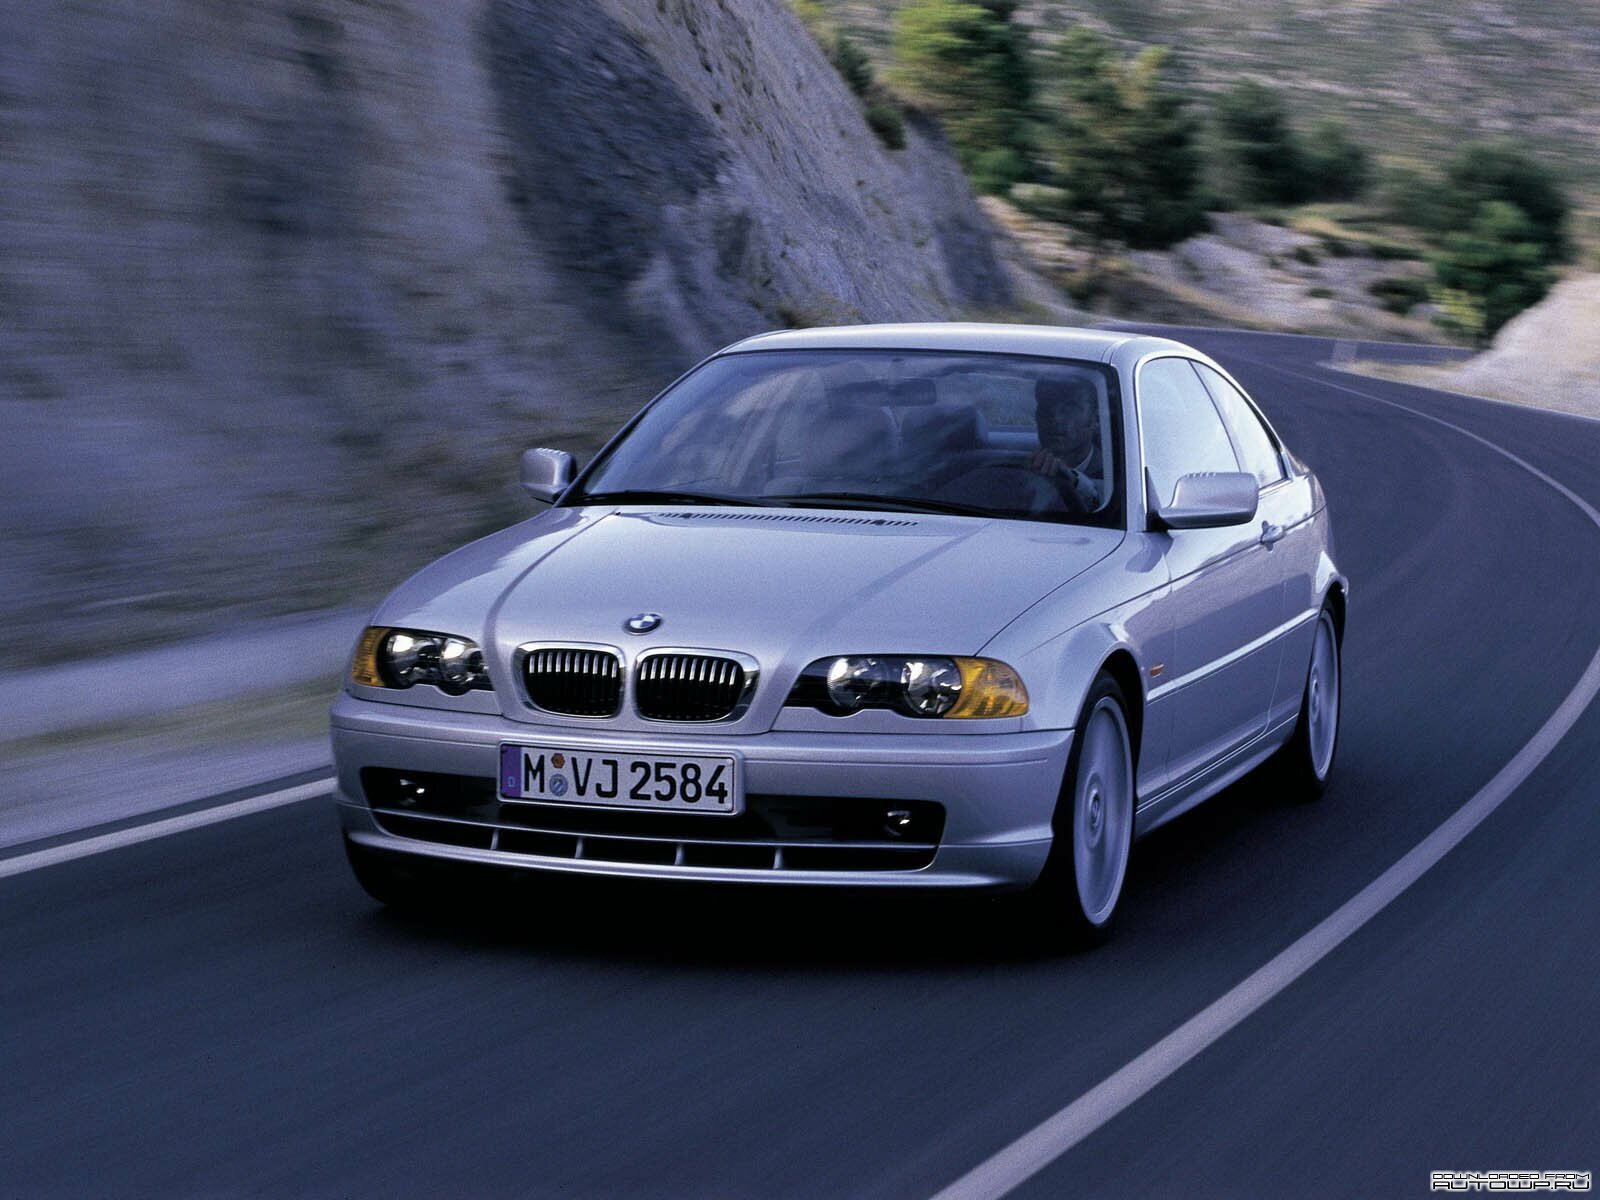 bmw 3 series e46 coupe picture 62805 bmw photo gallery. Black Bedroom Furniture Sets. Home Design Ideas